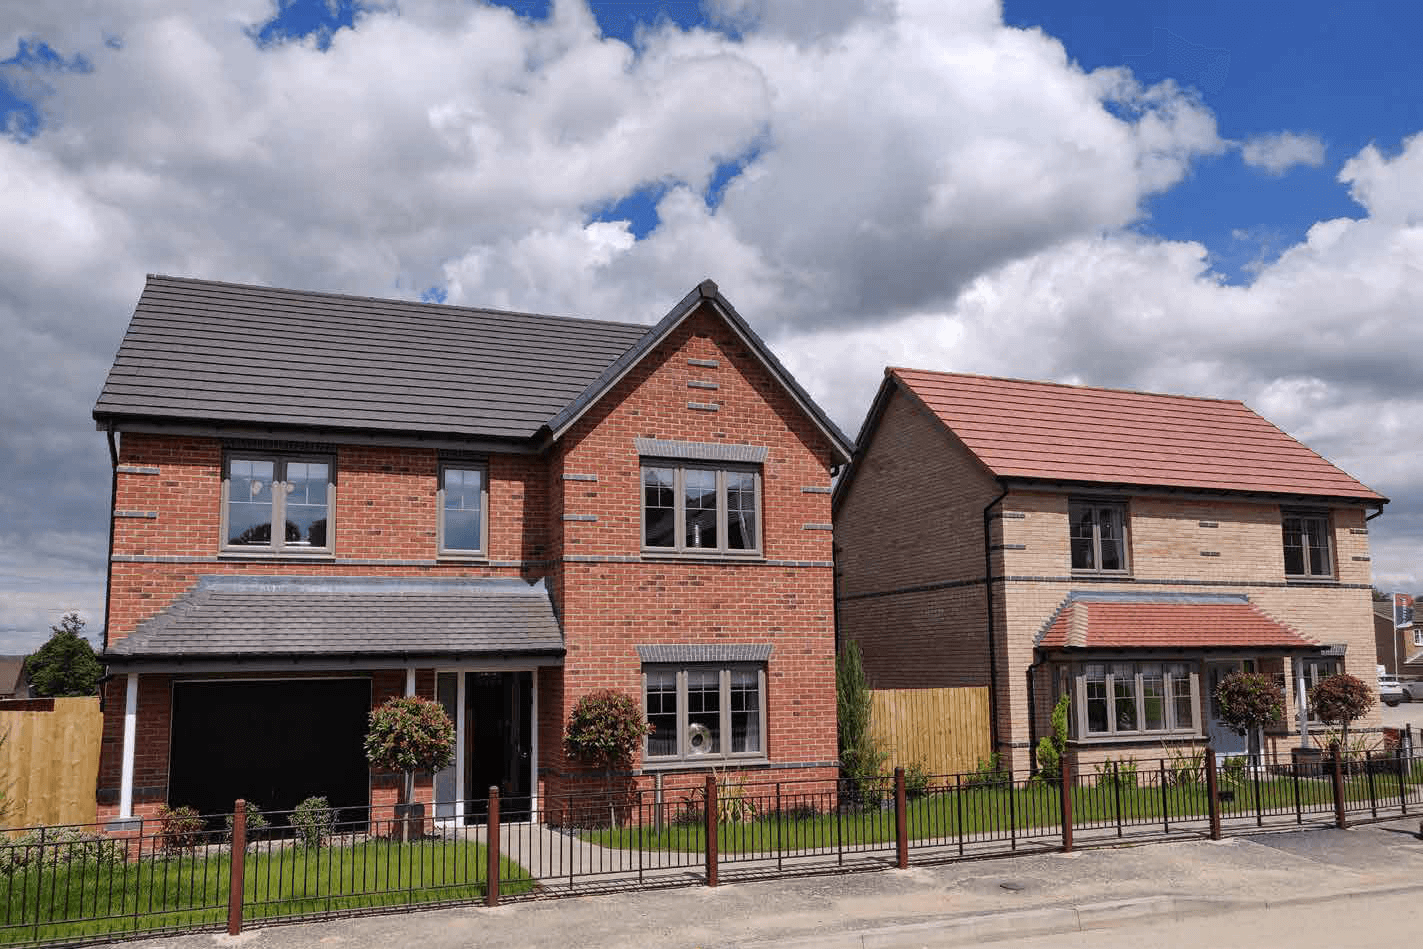 Two showhomes at De Rhodes Point, Chesterfield, which have been acquired by Barberry Group as part of a £7 million investment.